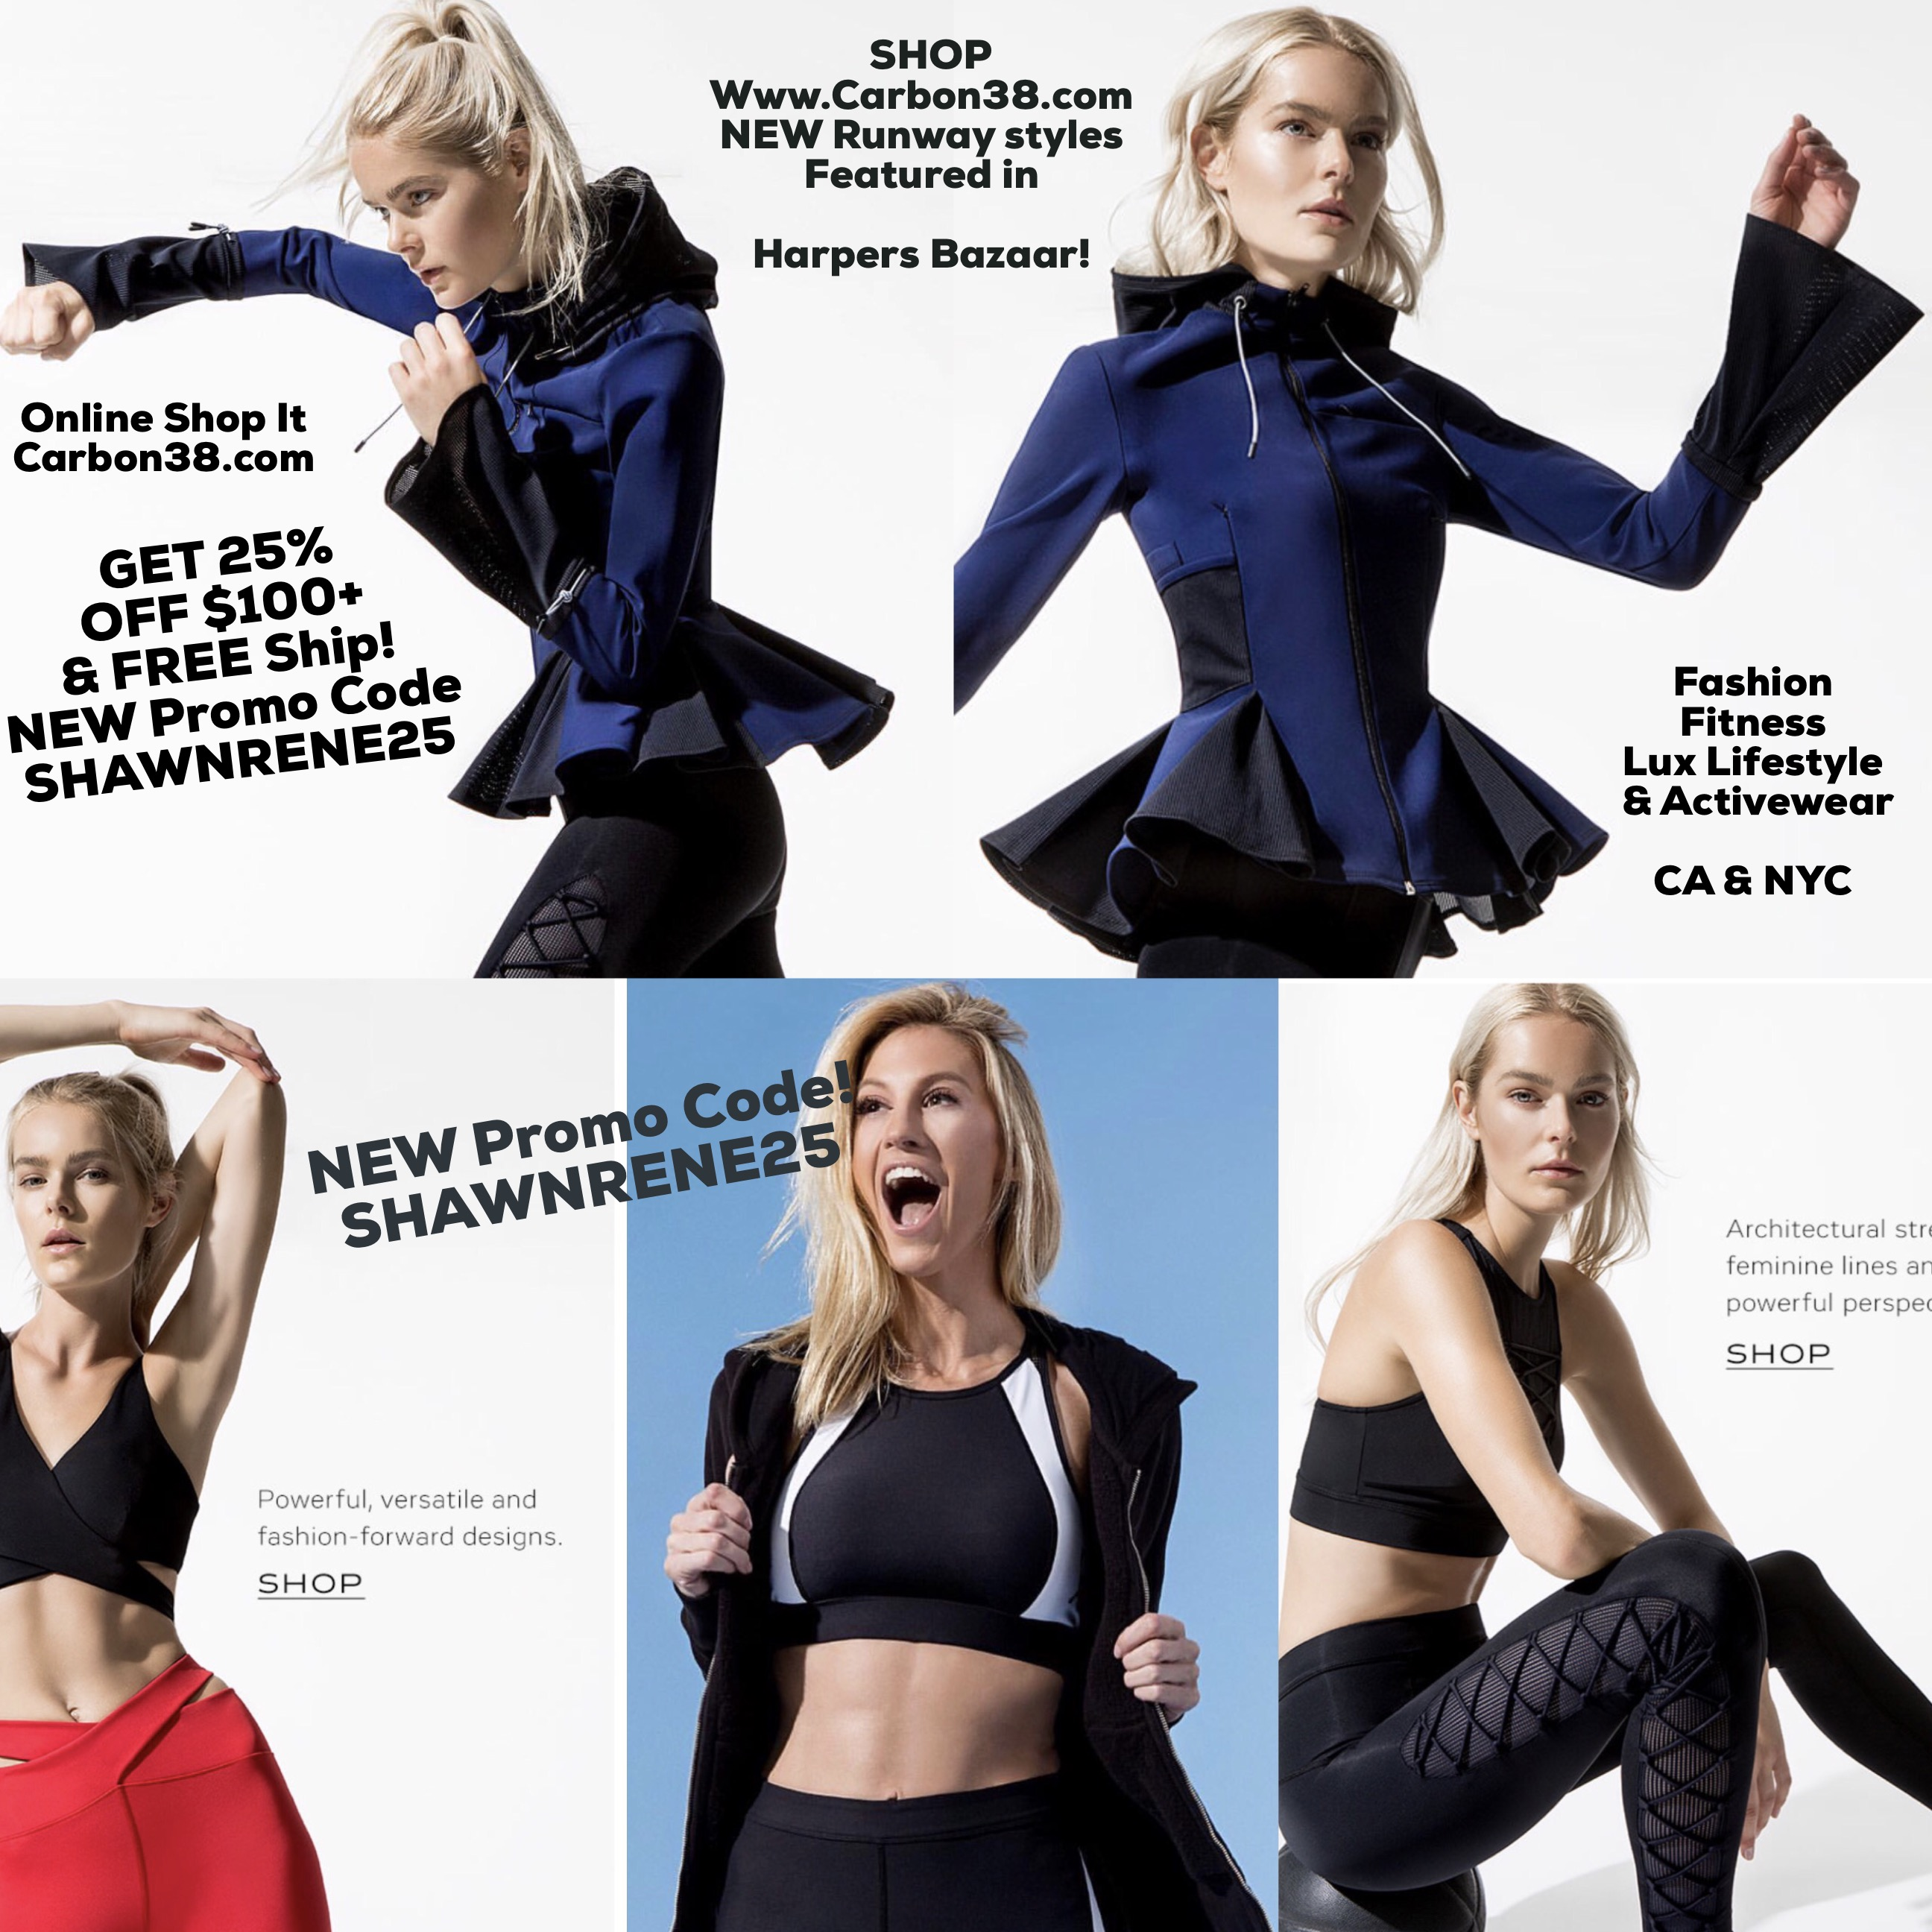 Carbon38 luxury fitness fashion athletes fitness model models activewear